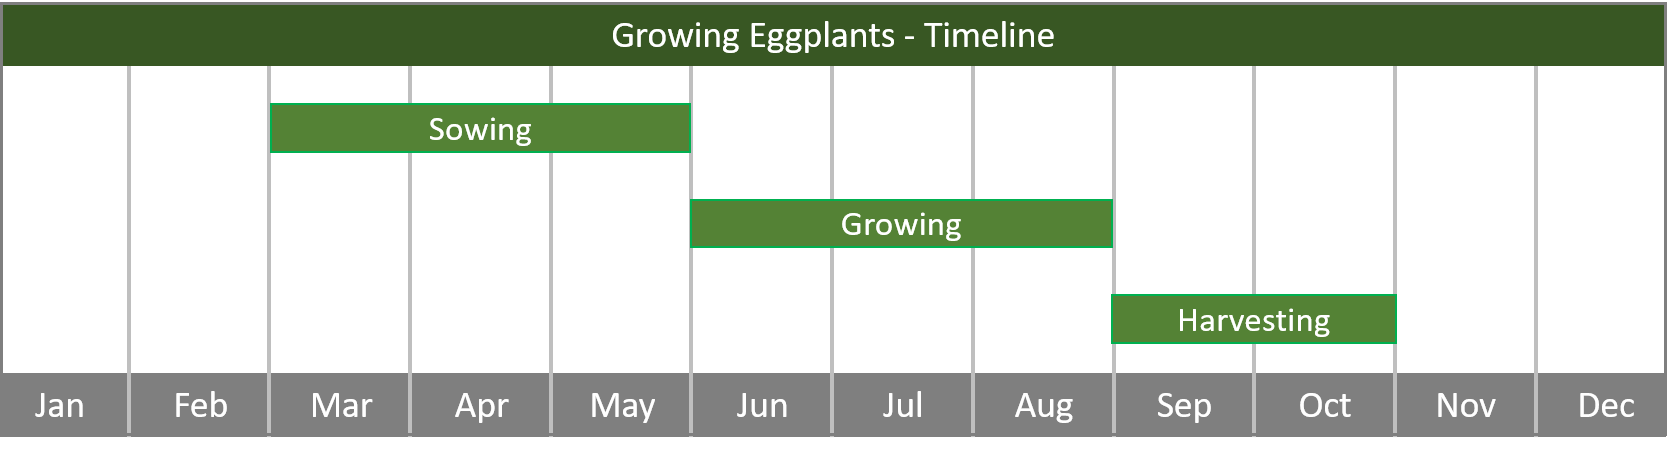 how to grow eggplants from seed to harvest timeline